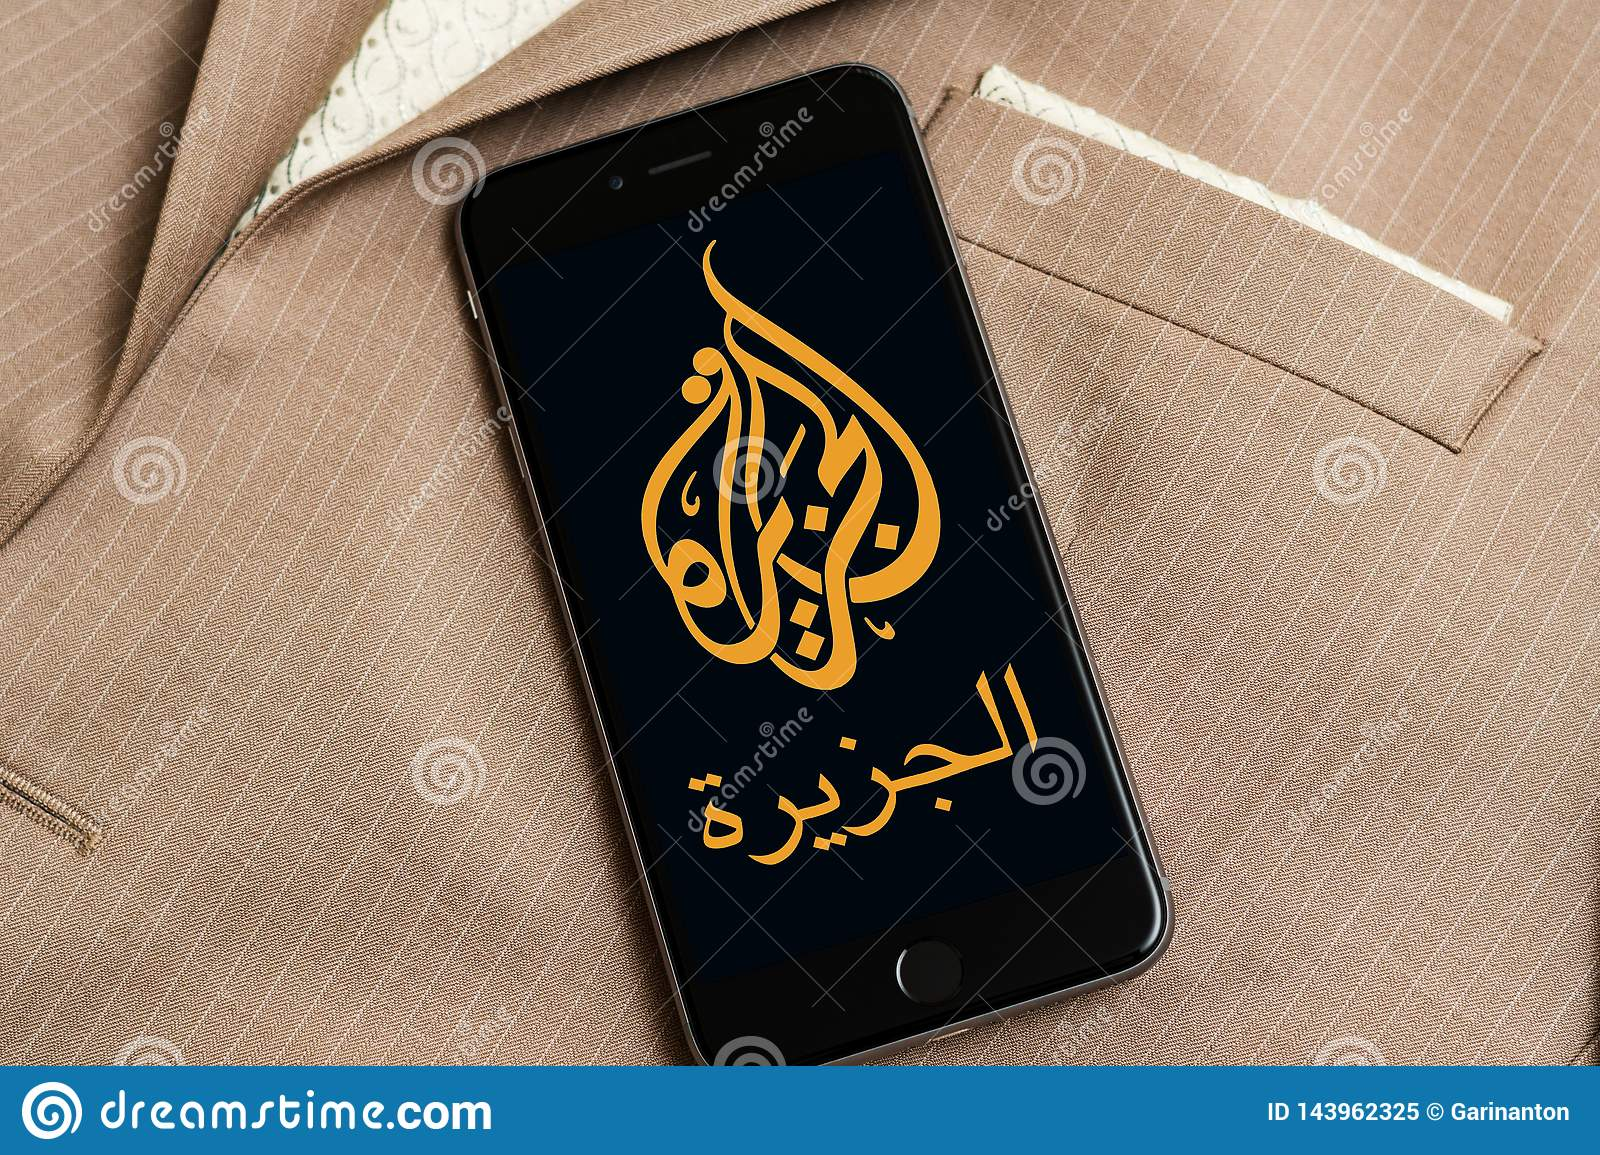 Black phone with logo of news media Al Jazeera on the screen.